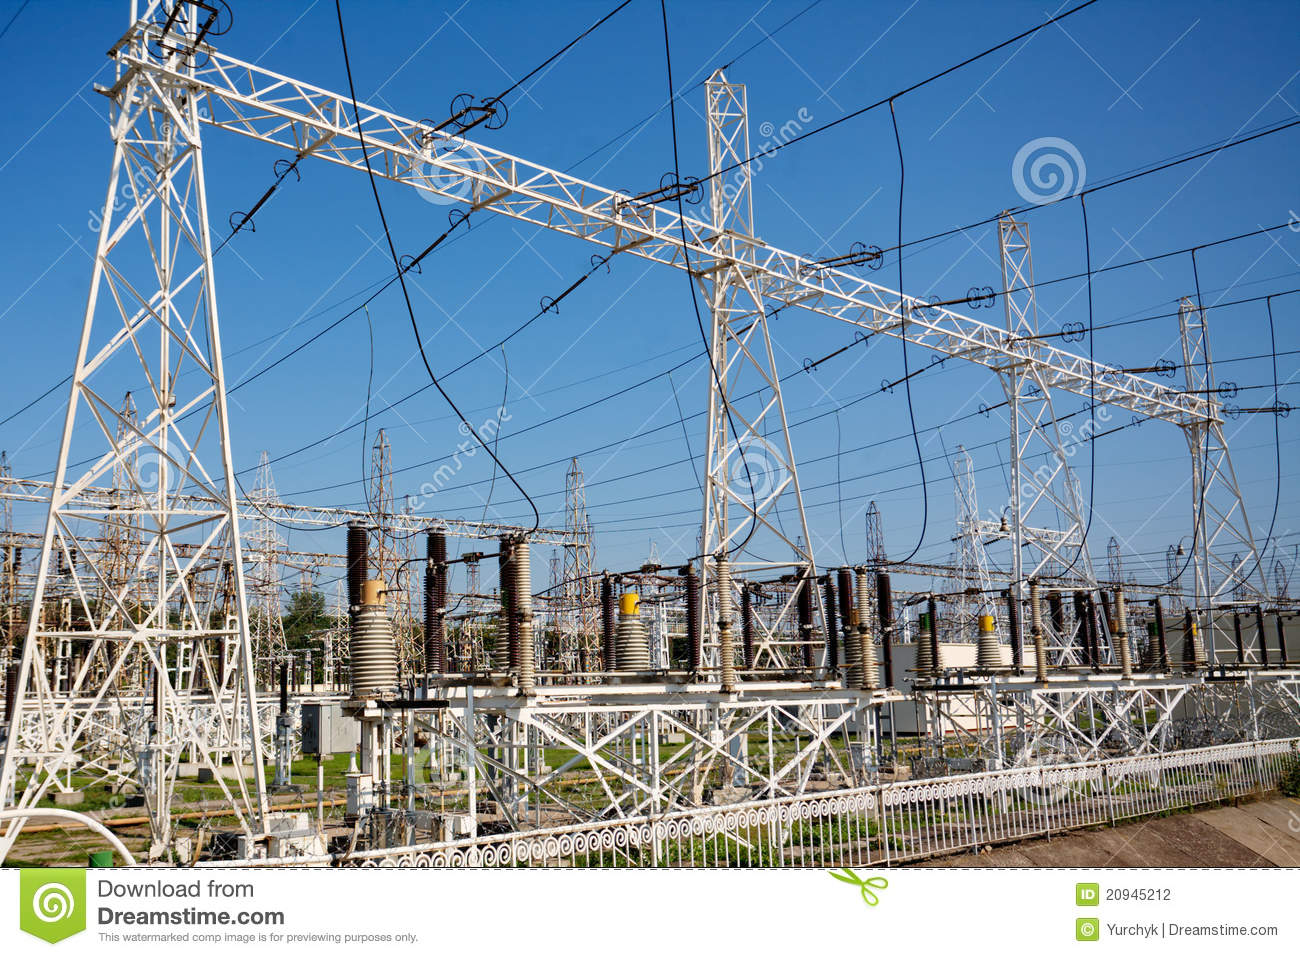 Electric power station with poles cables and powerful transformers.